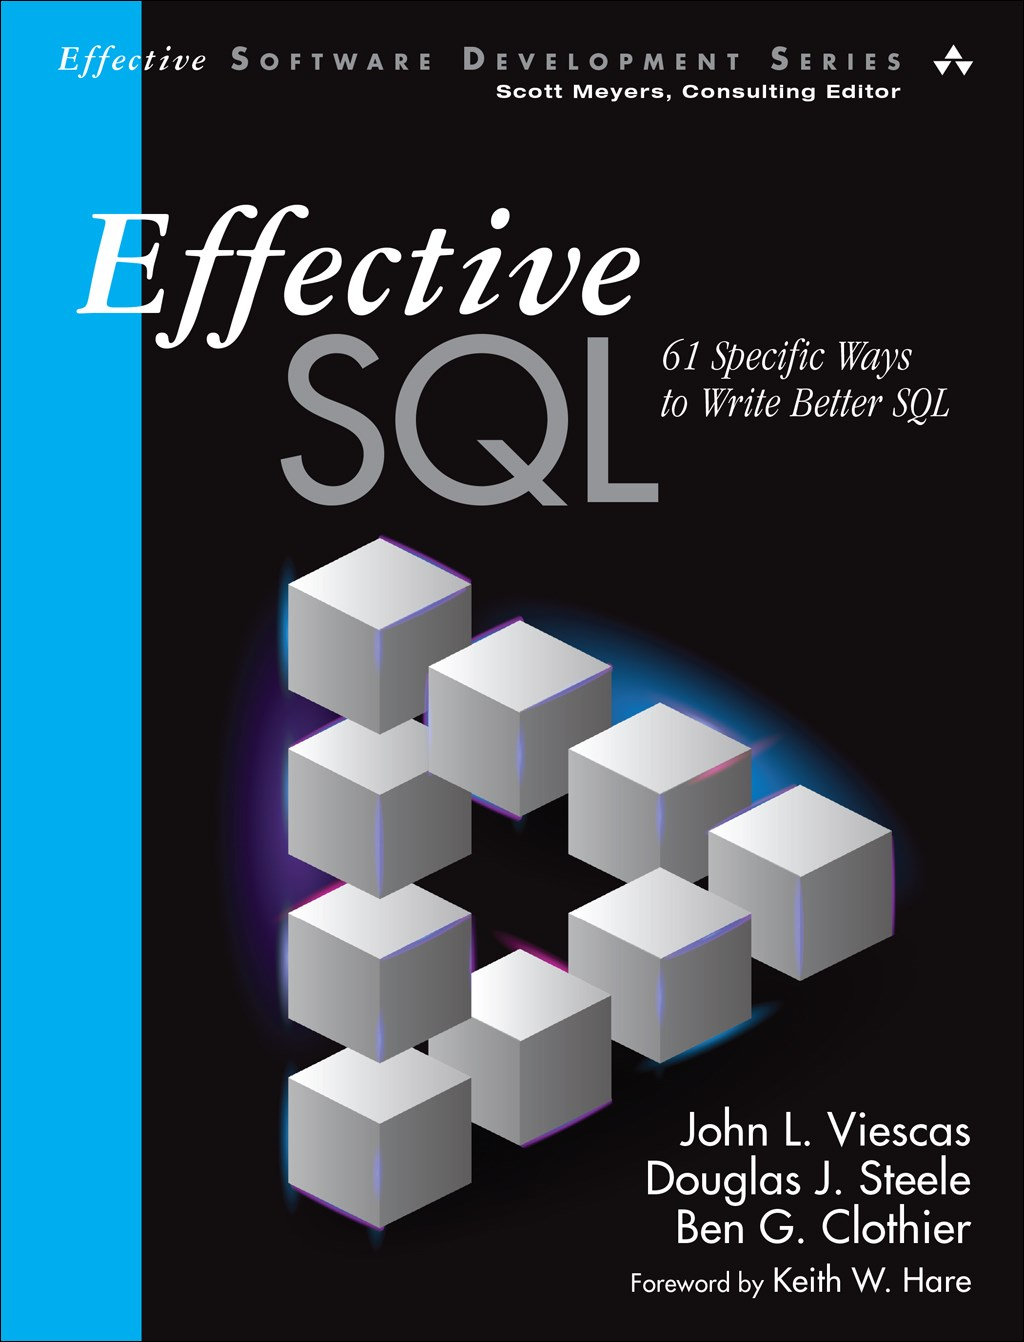 Effective SQL: 61 Specific Ways to Write Better SQL